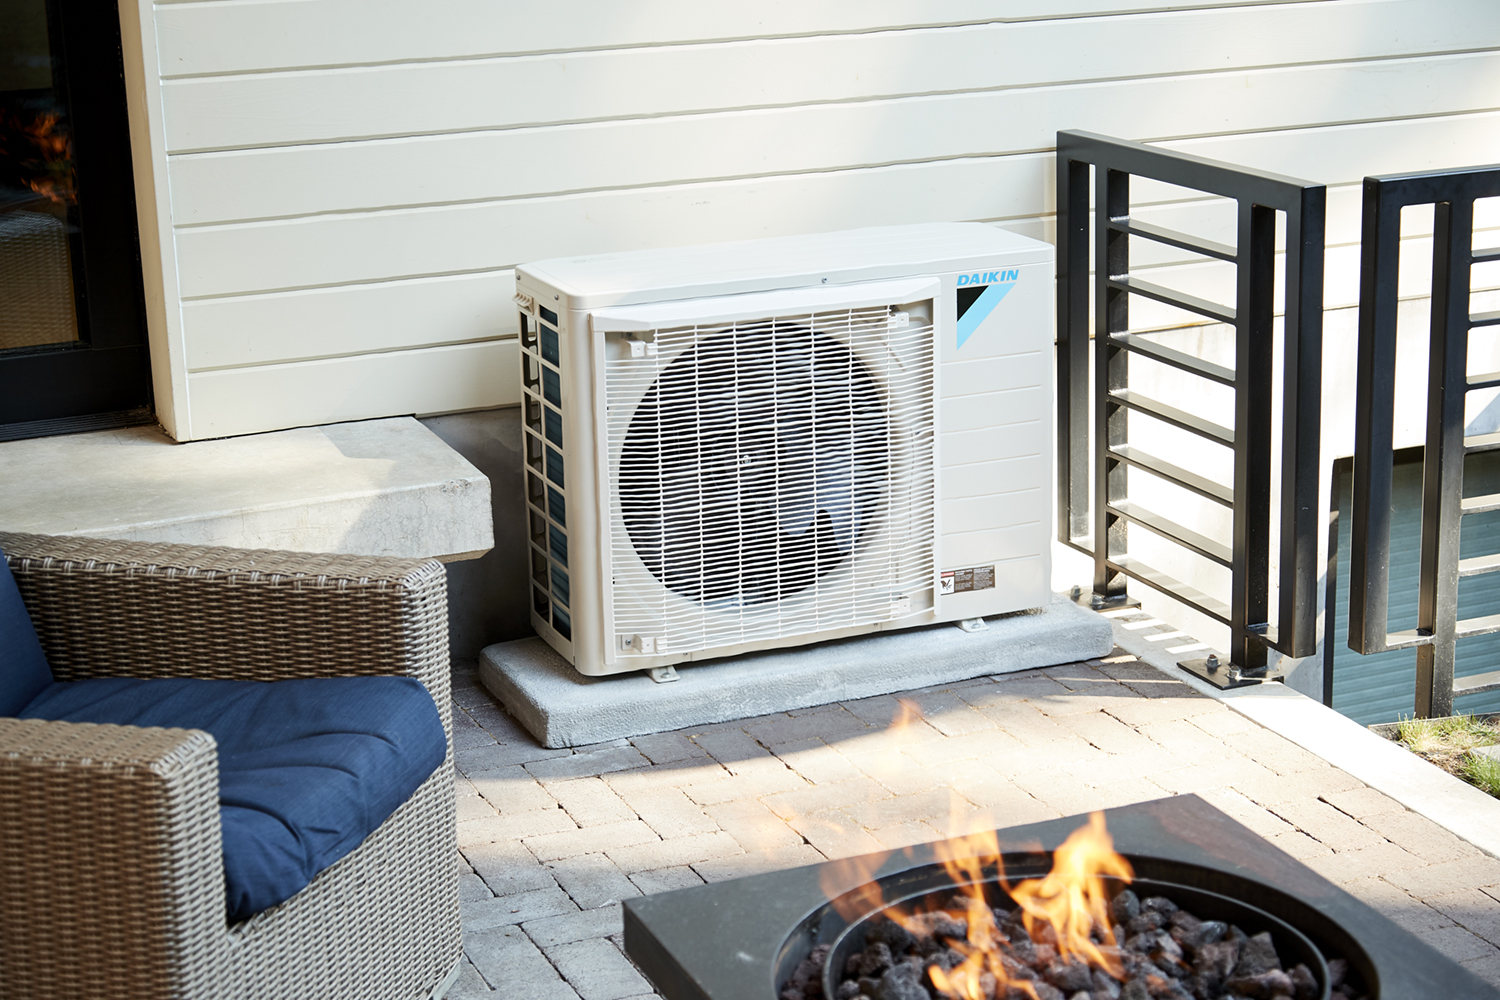 Daikin fit outside home